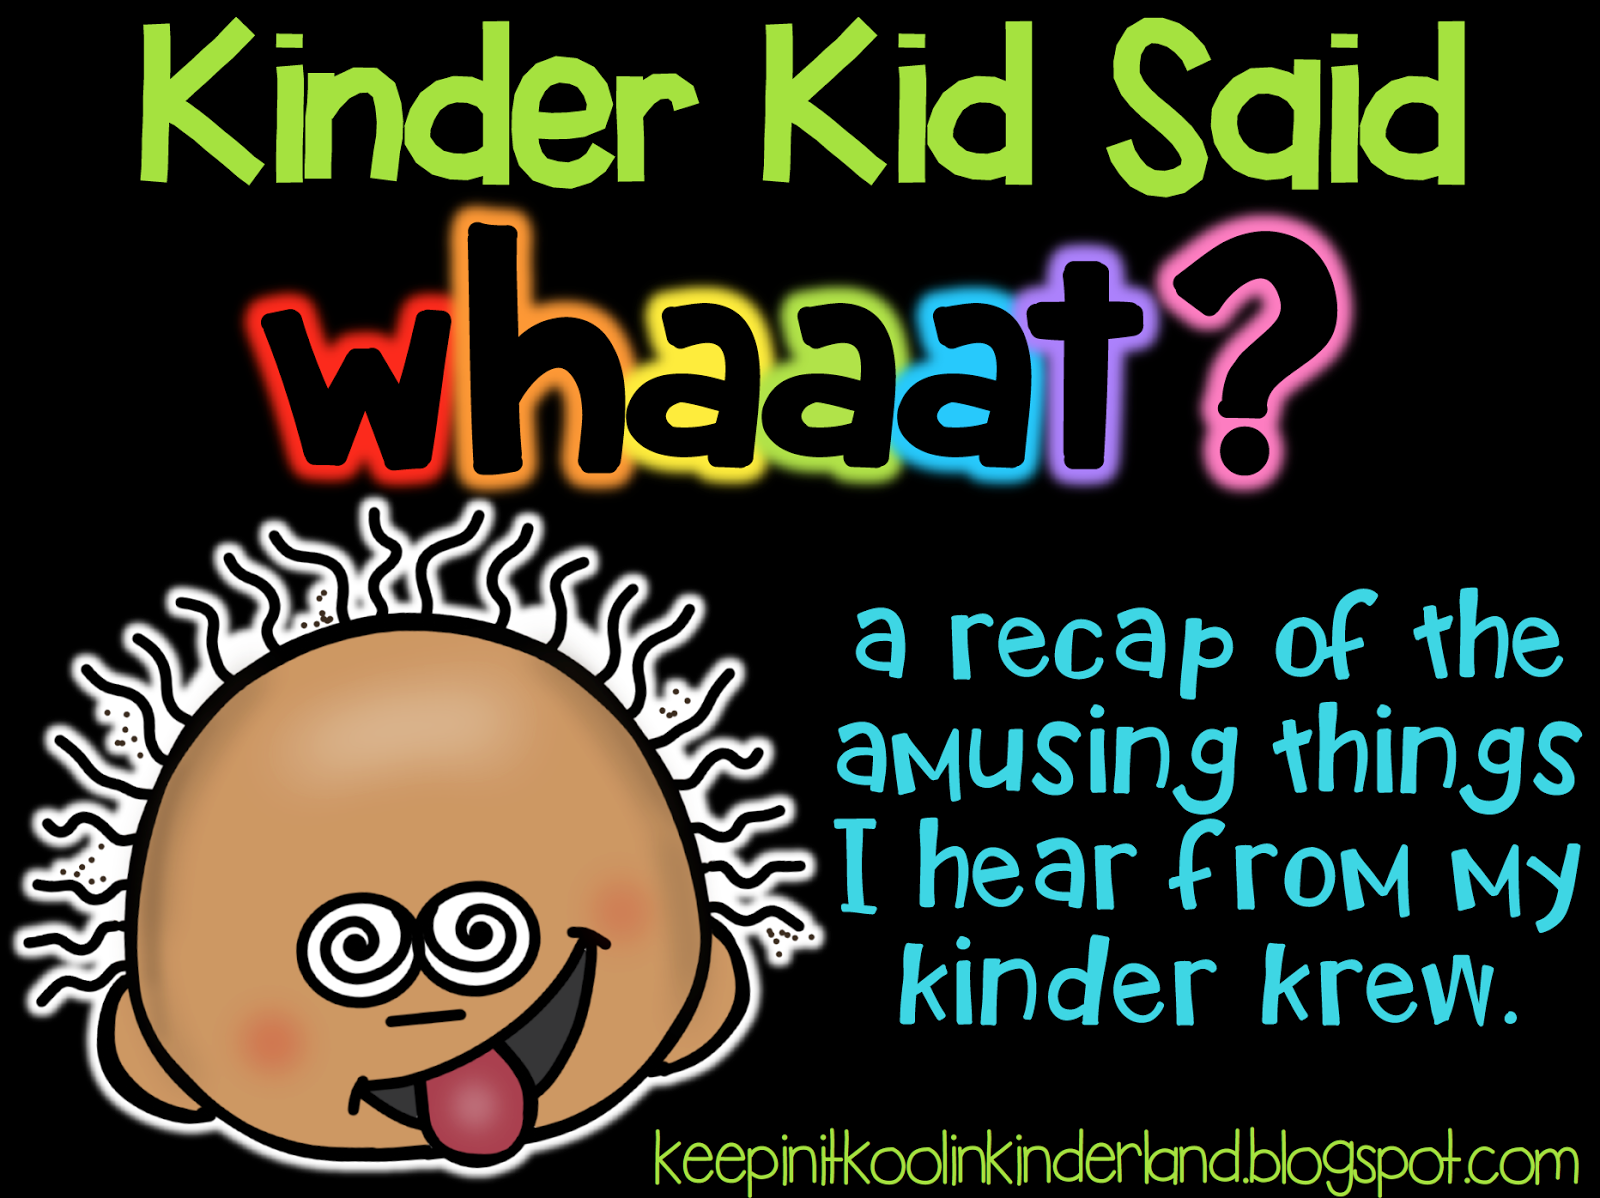 http://keepinitkoolinkinderland.blogspot.com/2014/08/kinder-kid-said-whaaat-new-linky.html